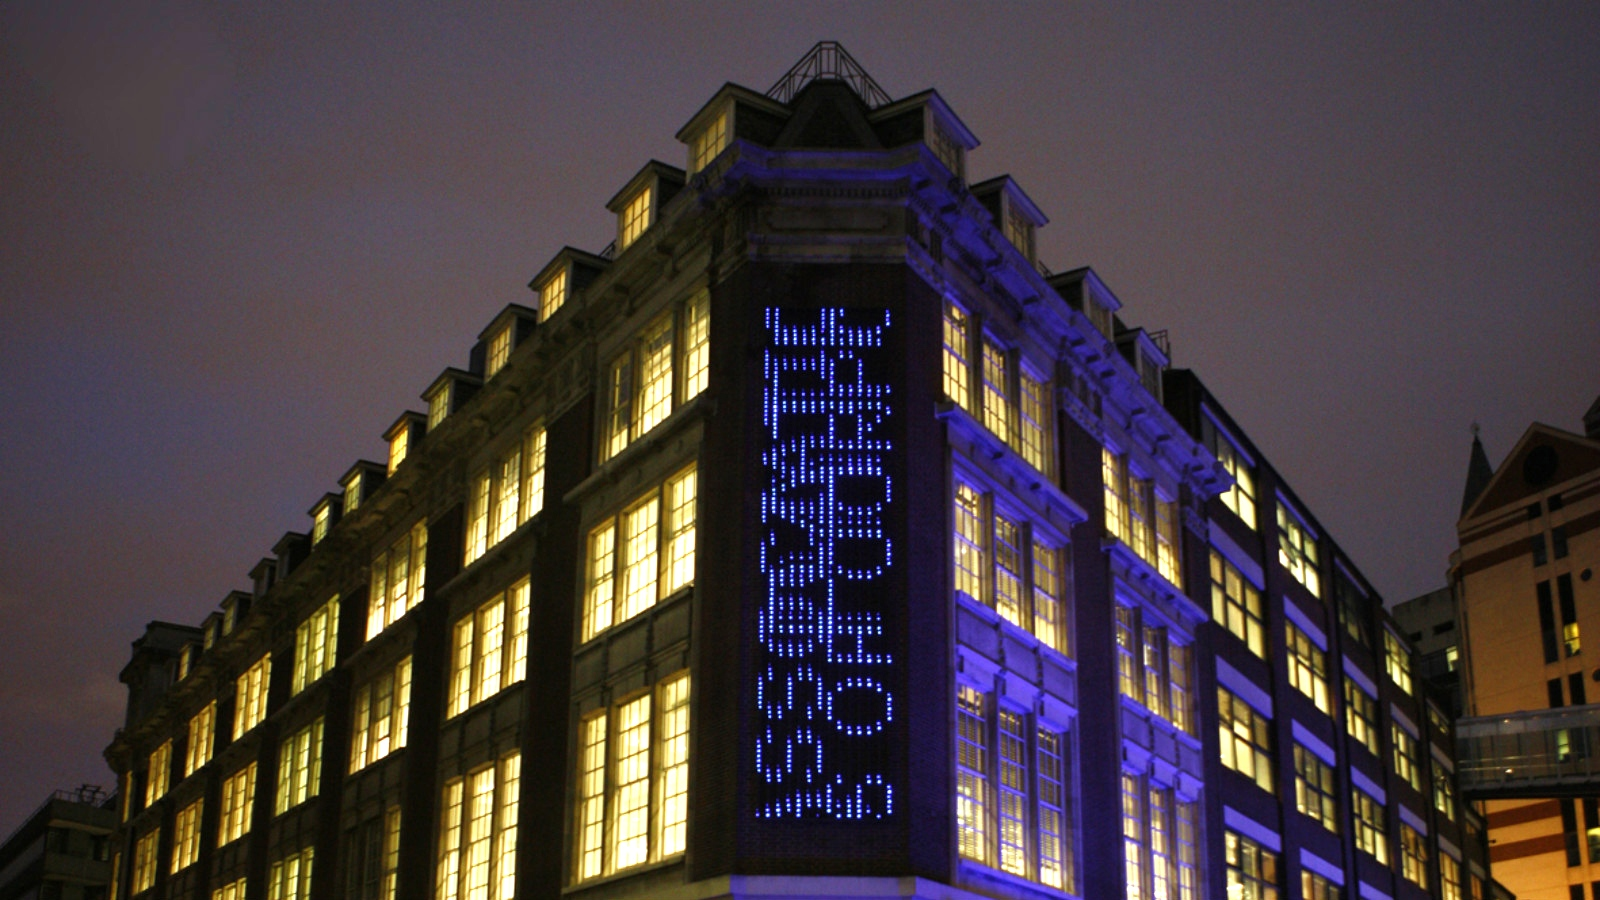 A view of LSE Library from outside at night with a focus on the Bluerain artwork on the corner of the building.